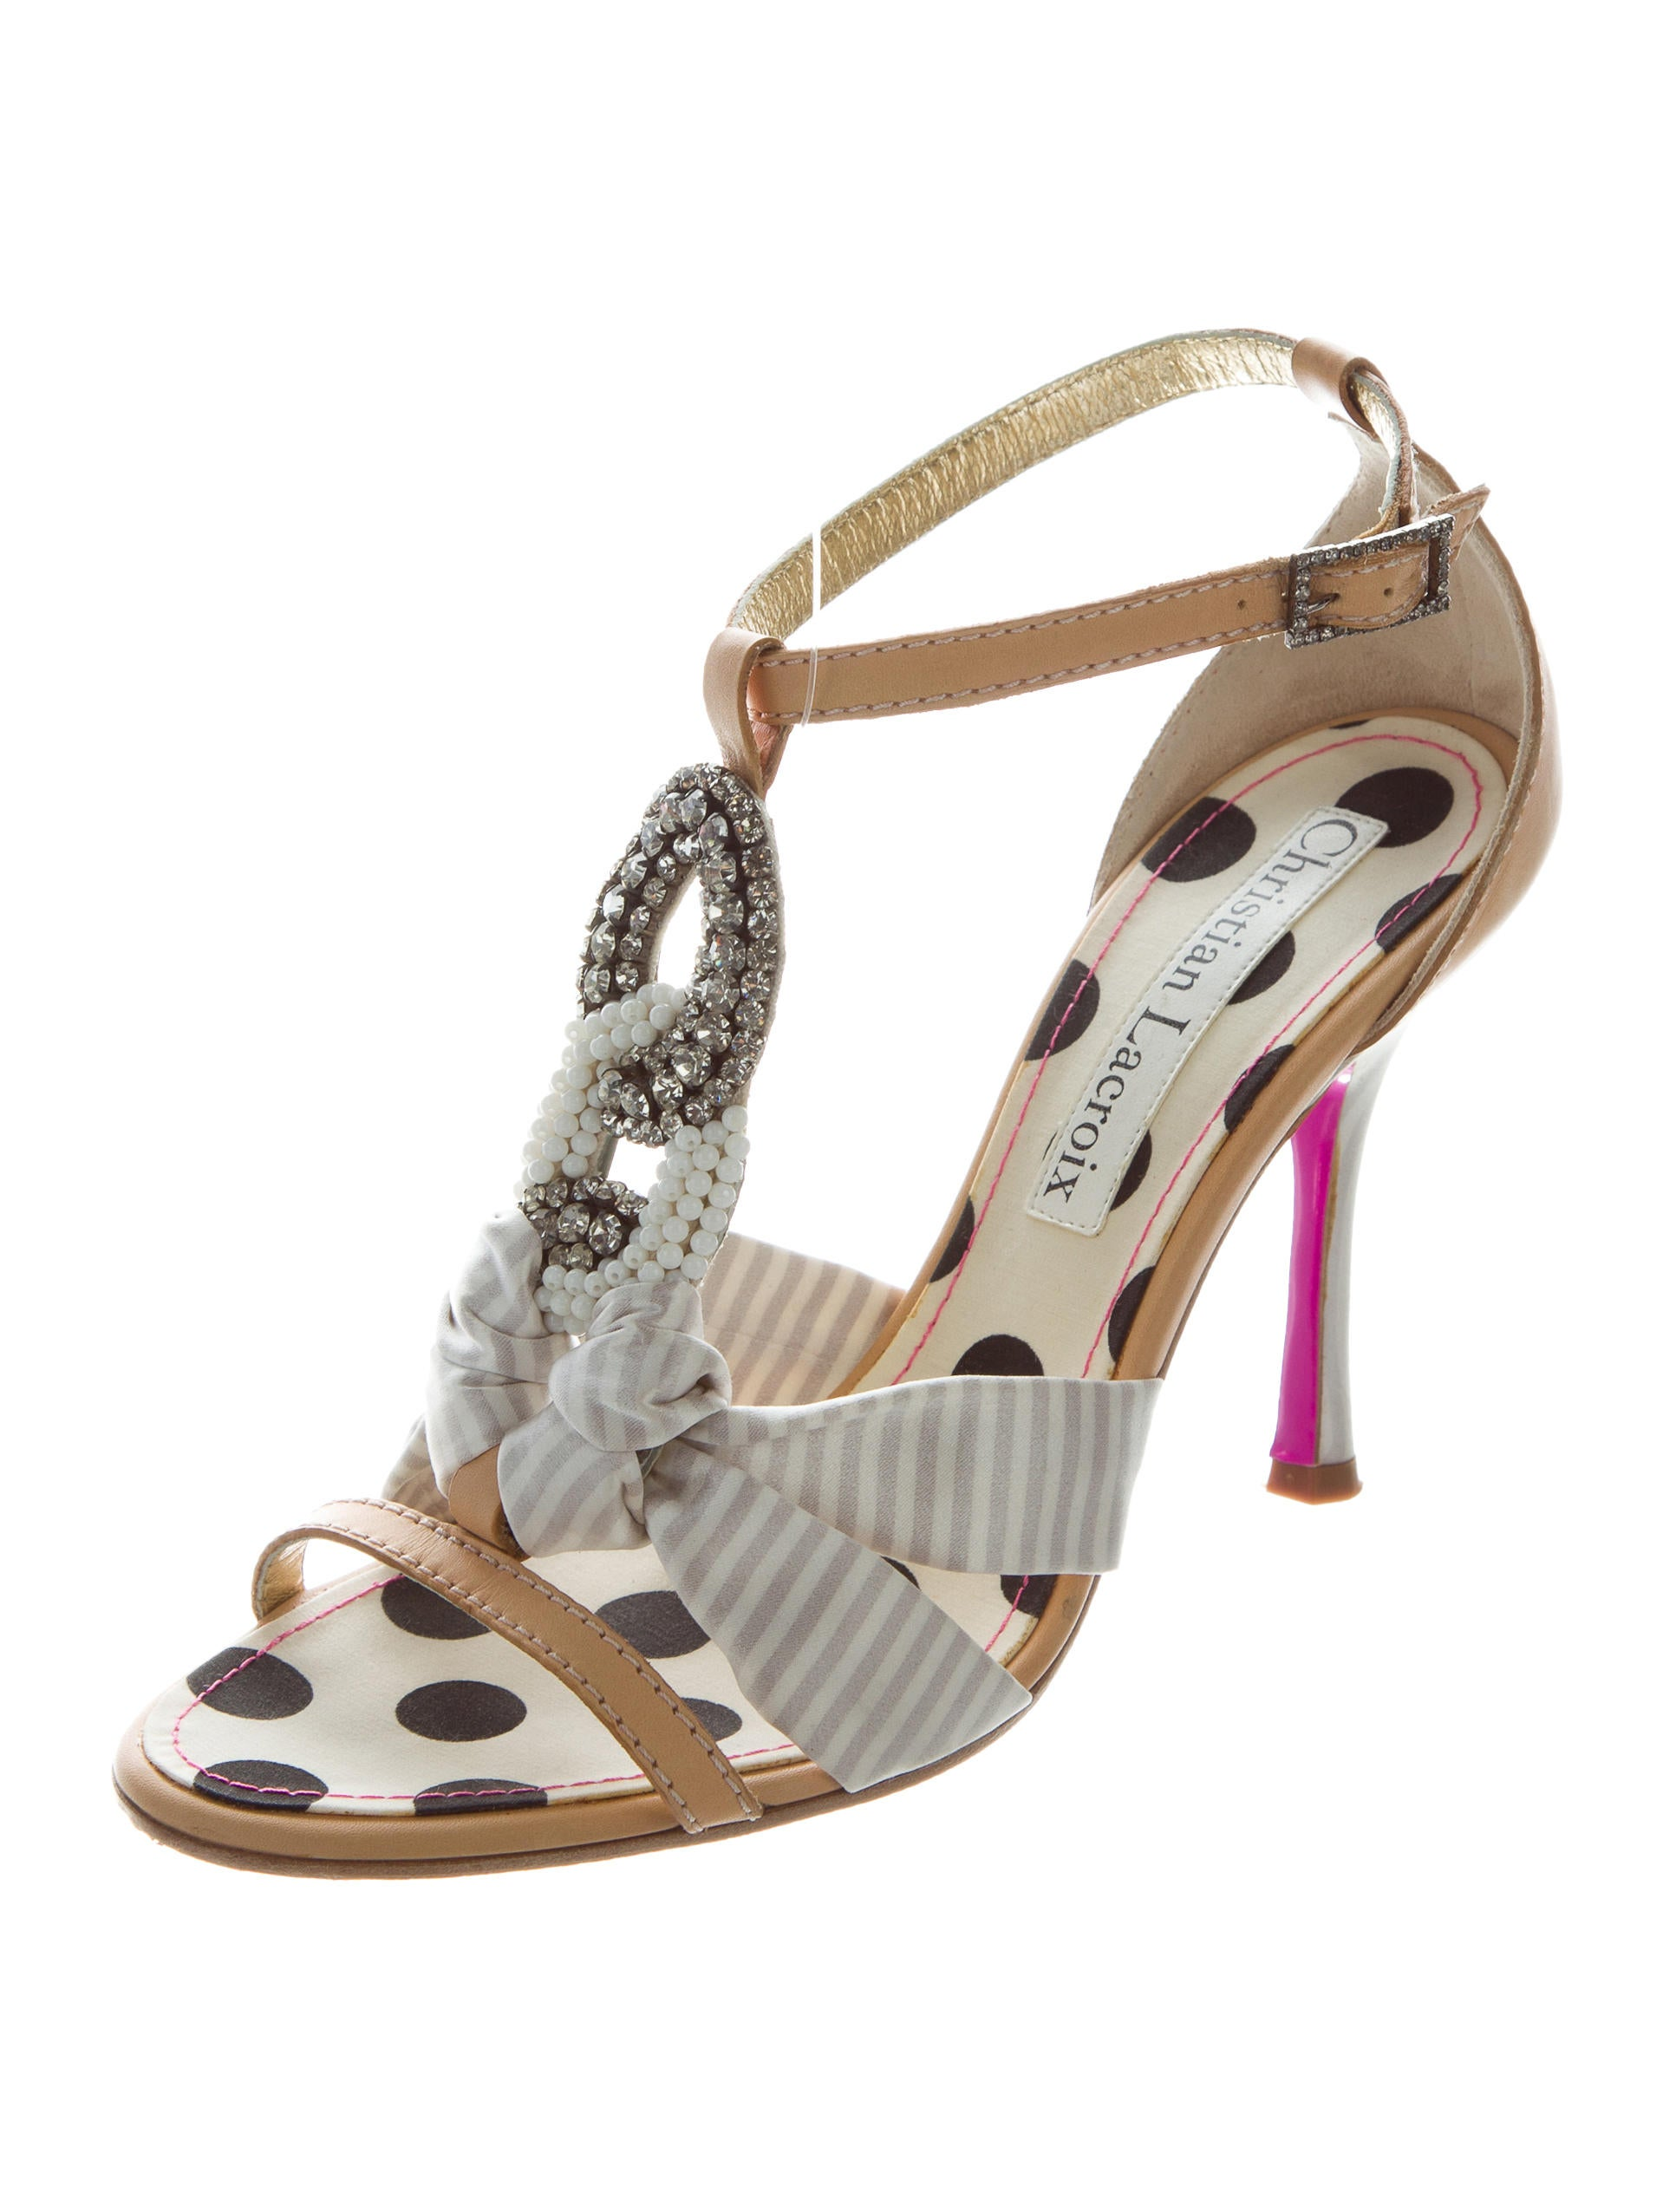 Christian Lacroix Clothing for Women − Sale: at USD $222 ...